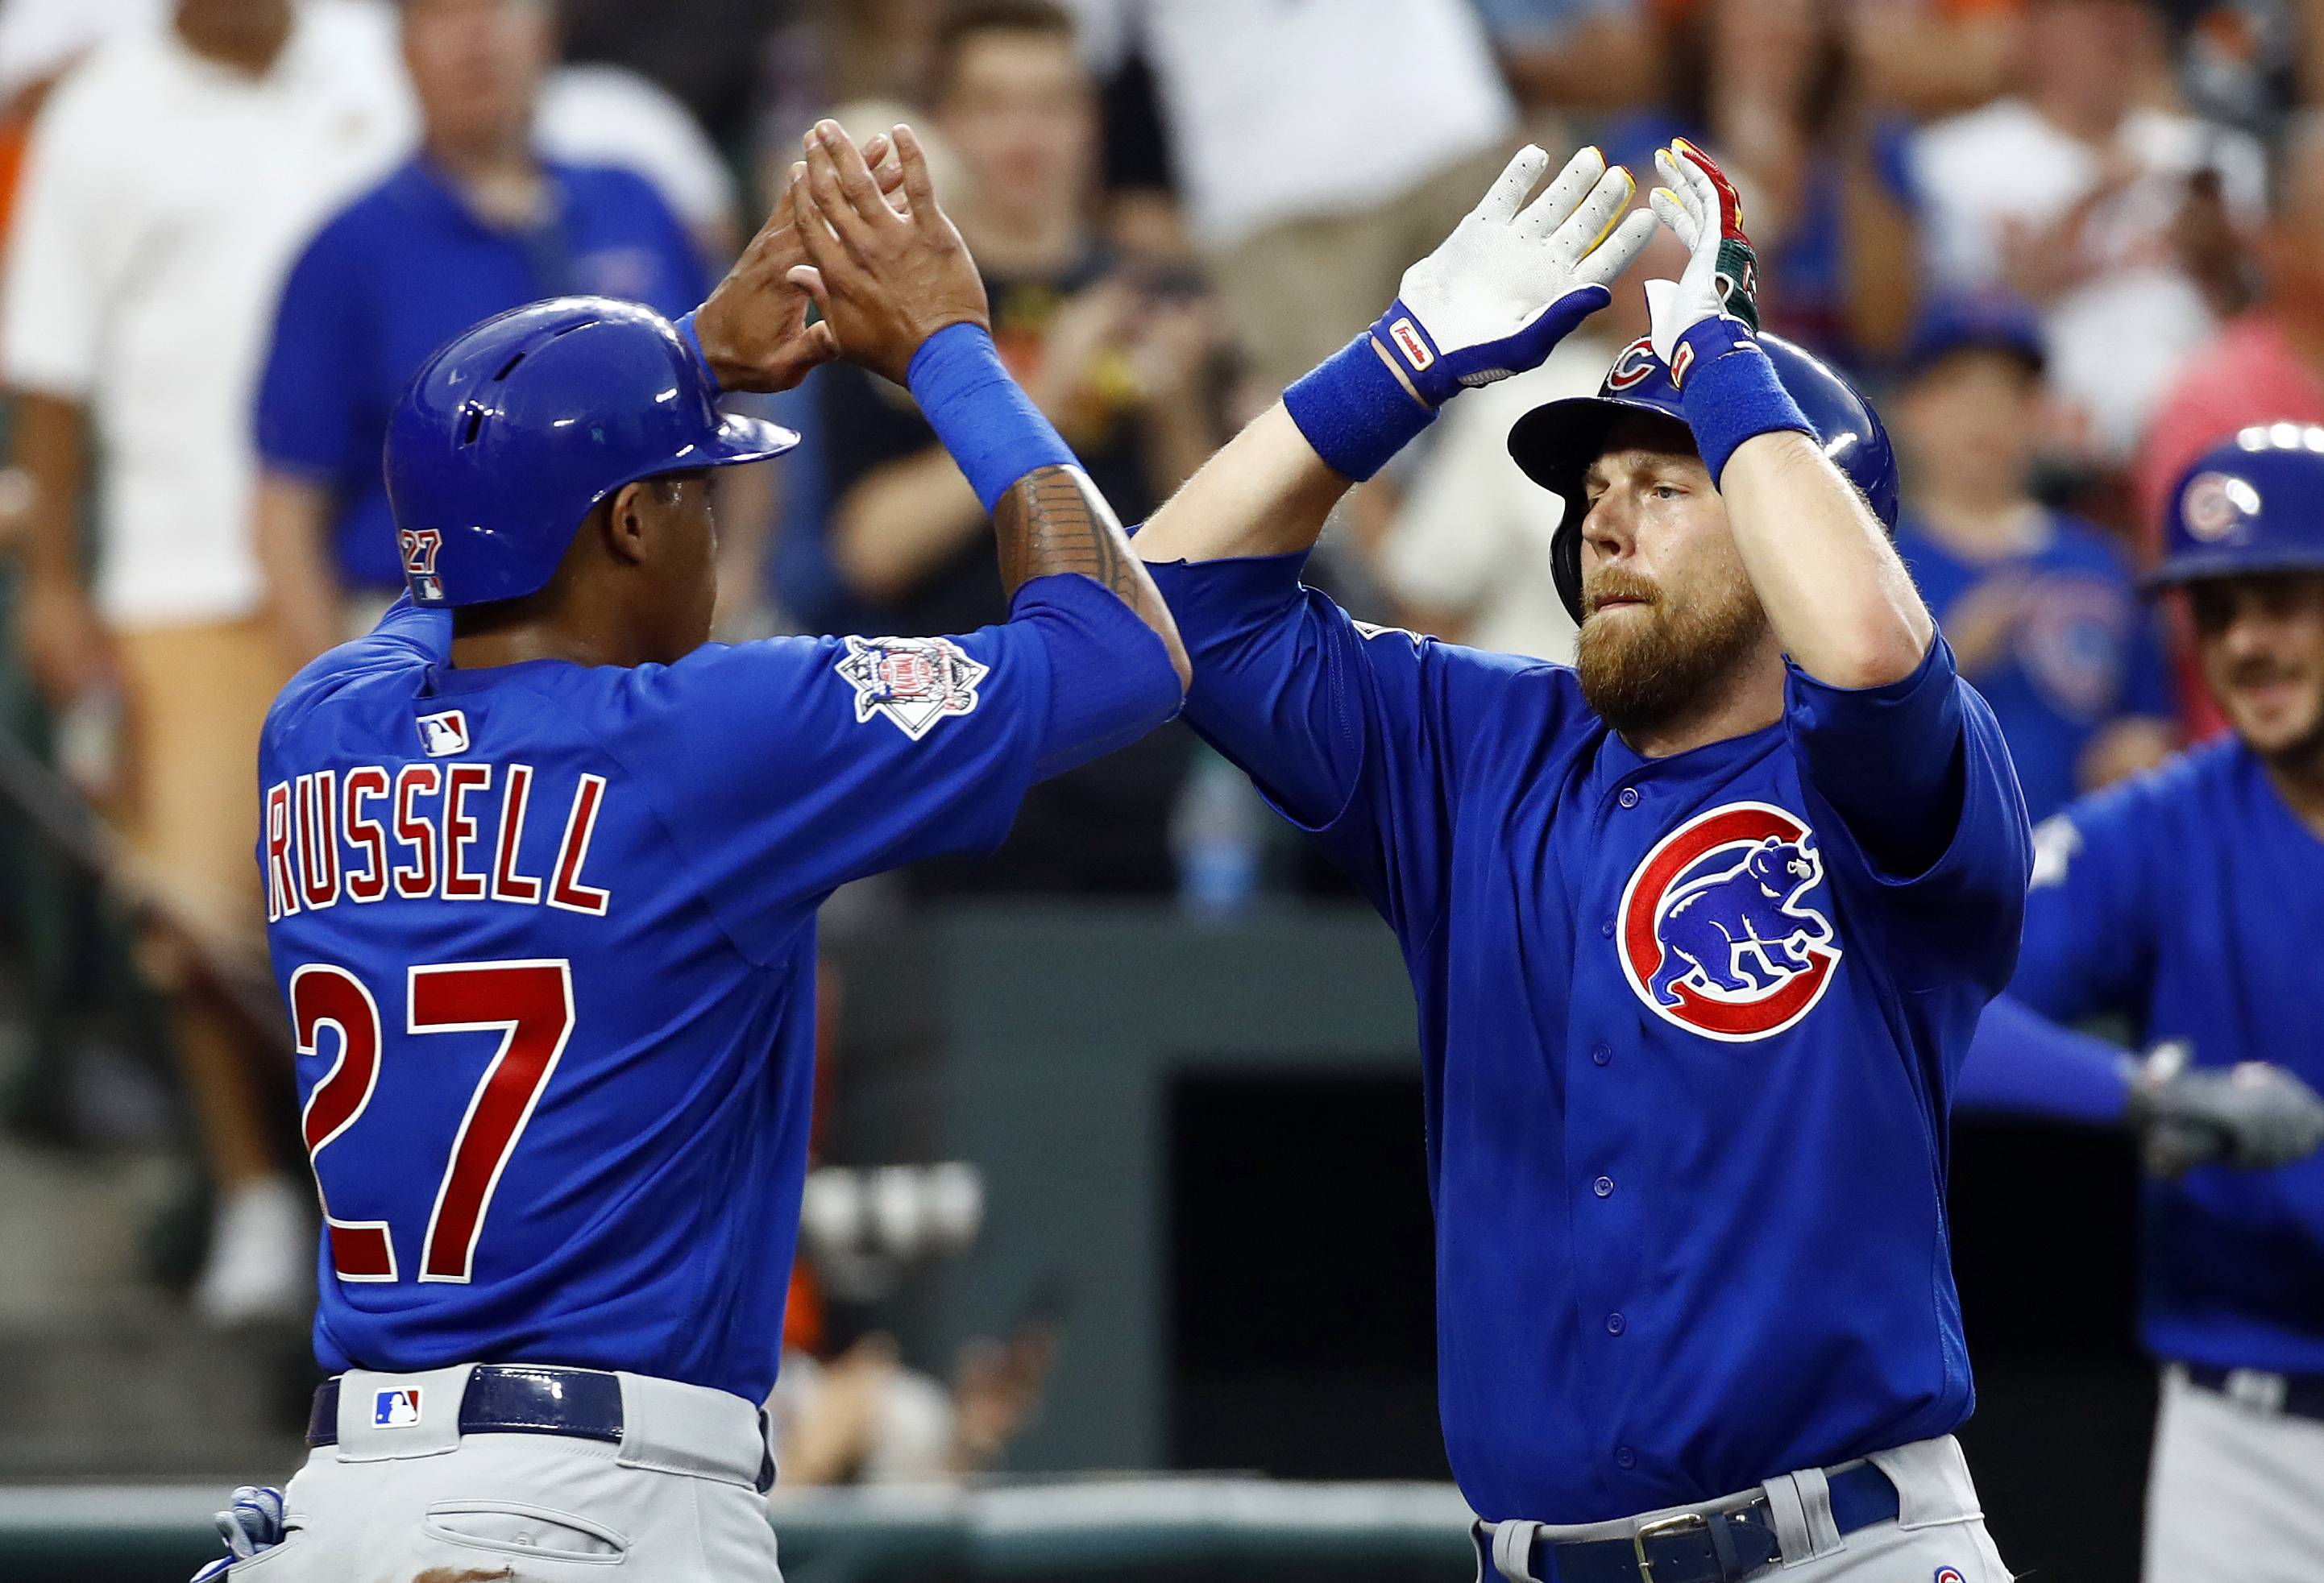 Ben Zobrist, right, will hit in the No. 1 slot, and teammate Addison Russell will return to the starting lineup and bat eighth as the Cubs load up with right-handed hitters in Game 2 of the Crosstown Cup series today with the White Sox and lefty pitcher Carlos Rodon.